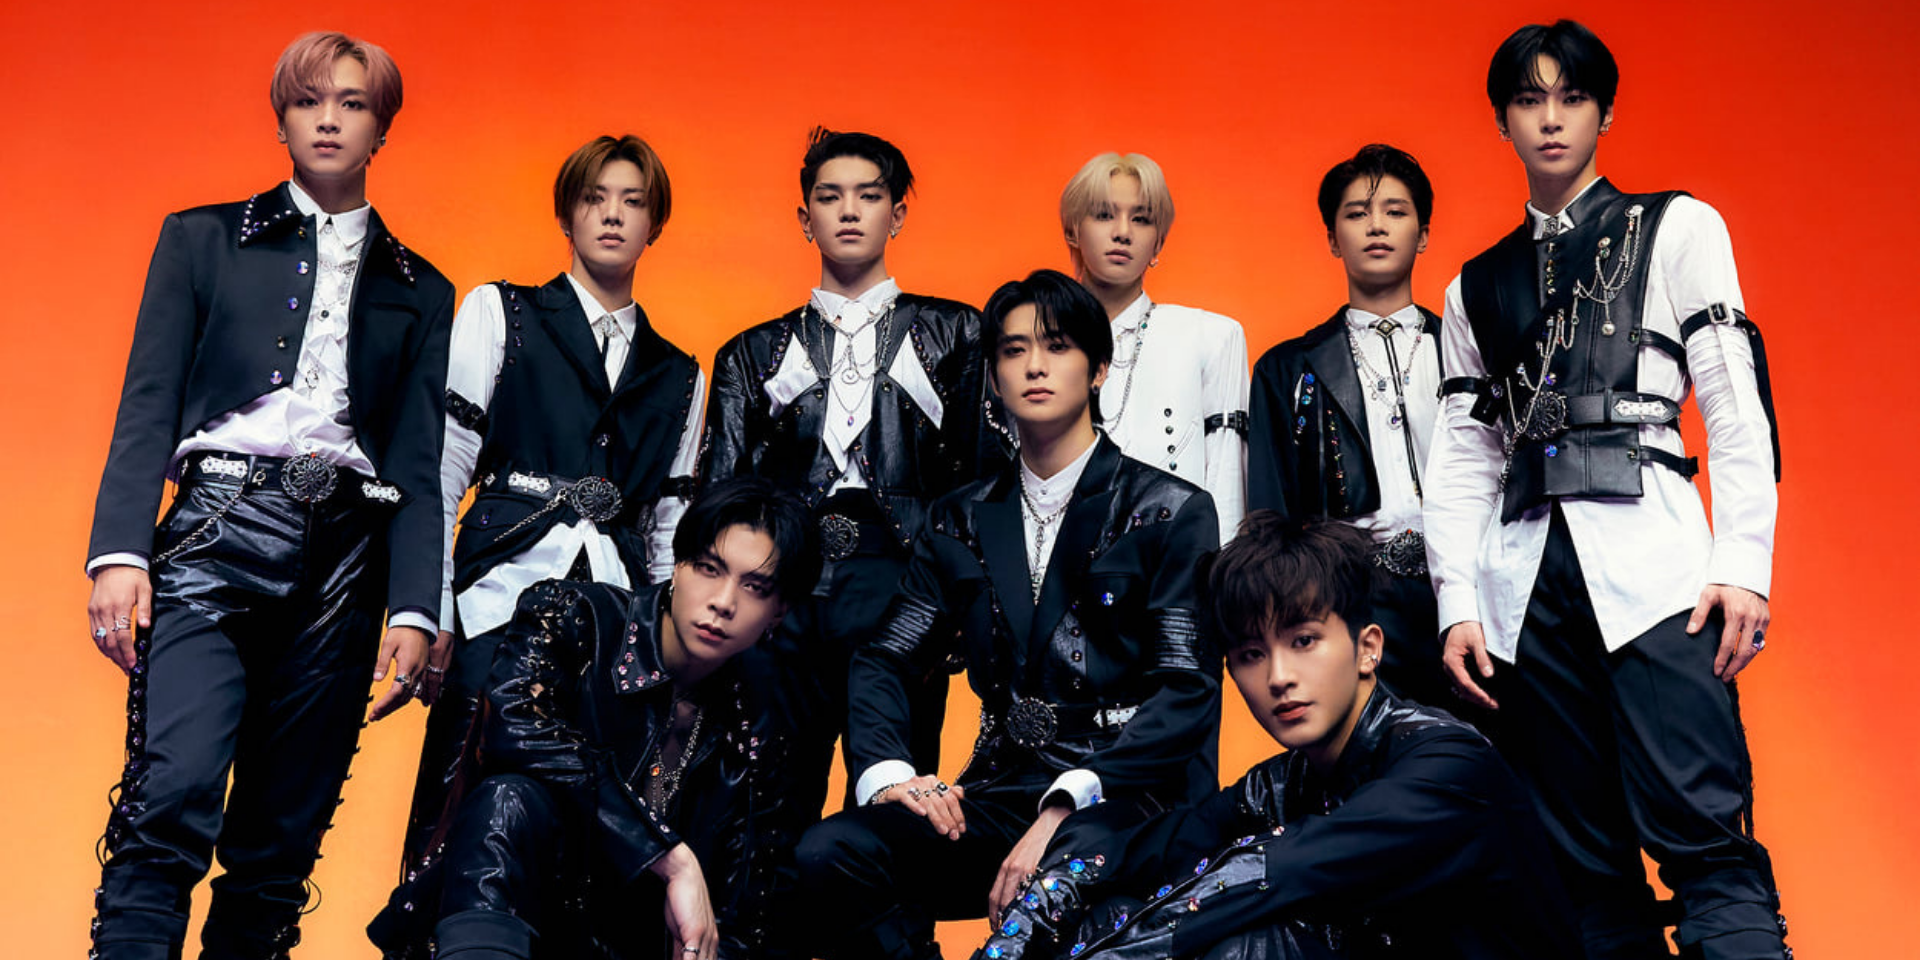 NCT 127 are double million sellers with 2.12 million pre-orders for 'STICKER'